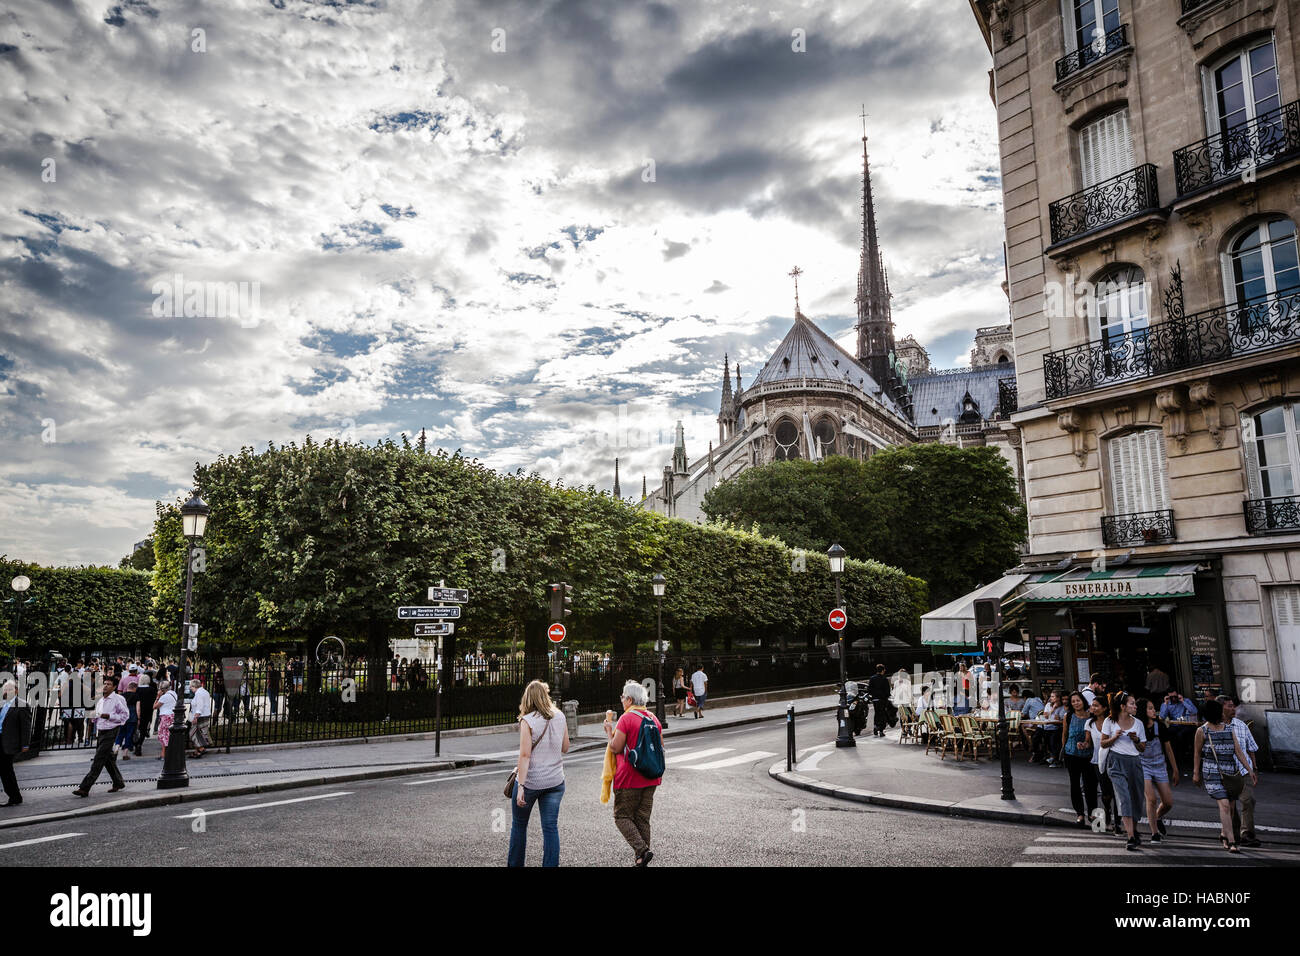 A view of the Notre Dame de Paris from the Pont Saint-Louis - Stock Image